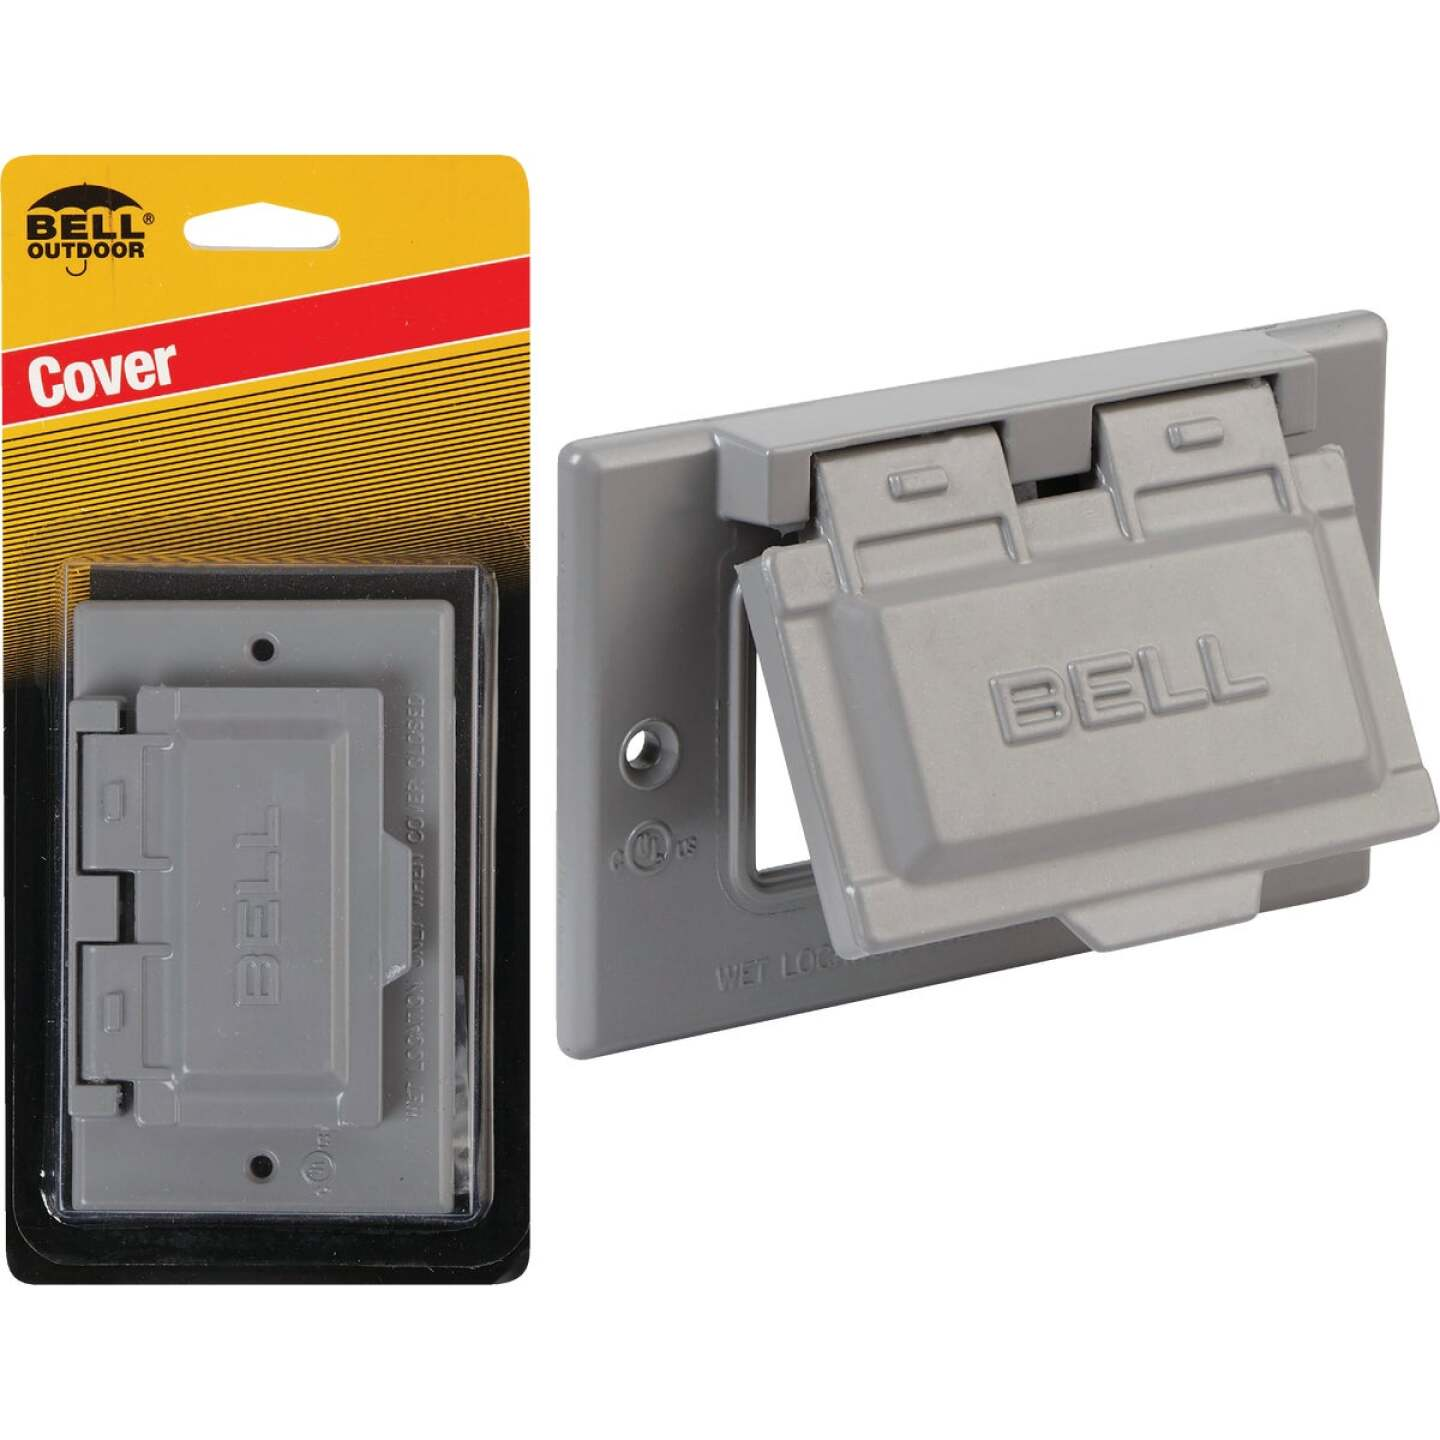 Bell Single Gang Horizontal GFCI Aluminum Gray Weatherproof Outdoor Electrical Cover Image 1